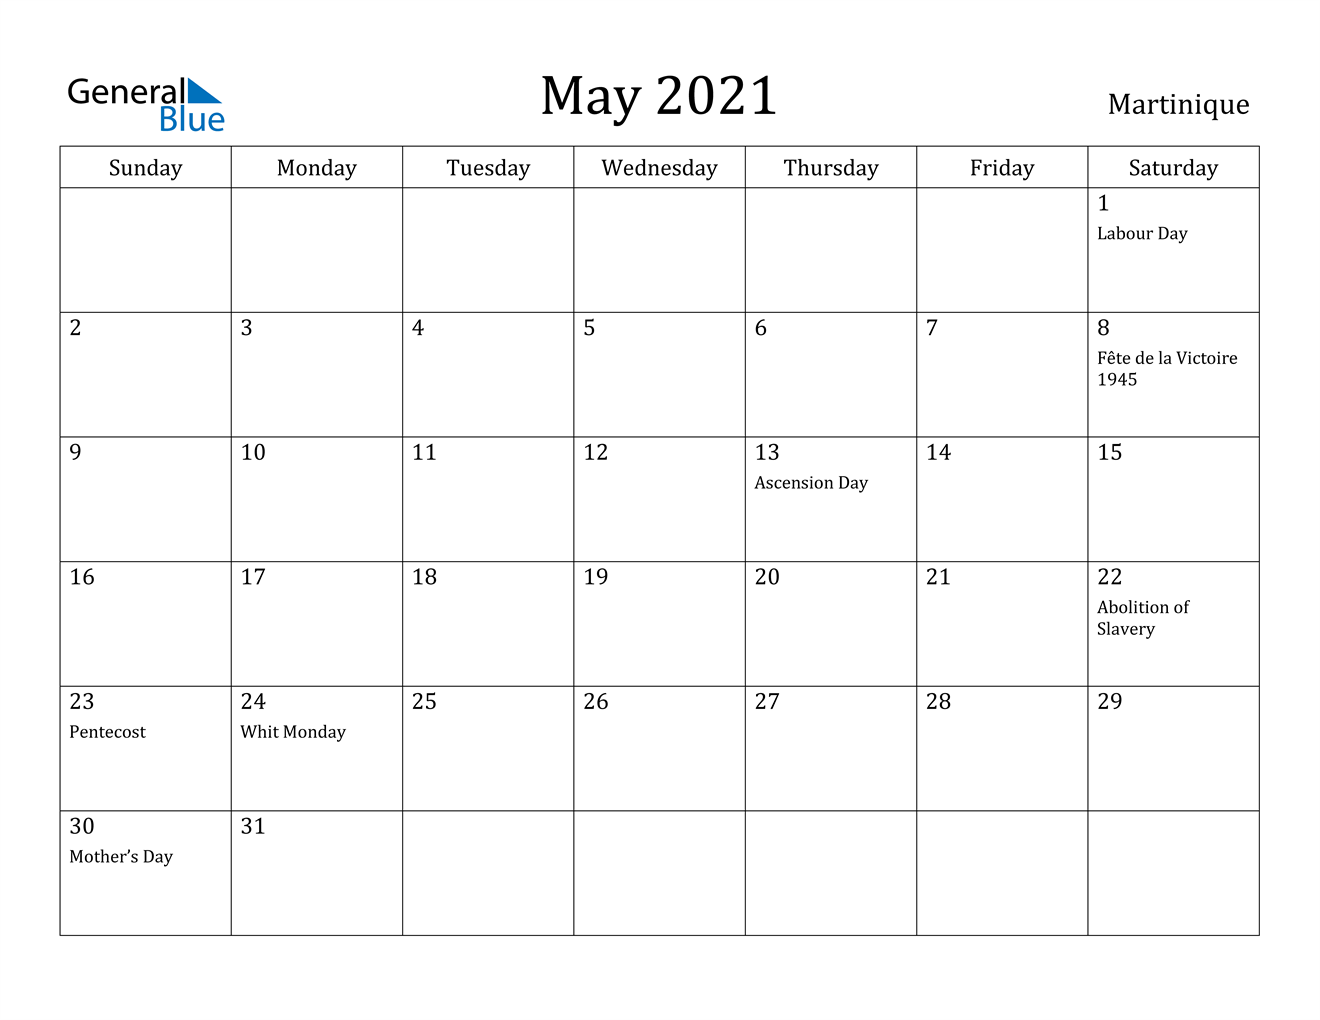 May 2021 Calendar - Martinique